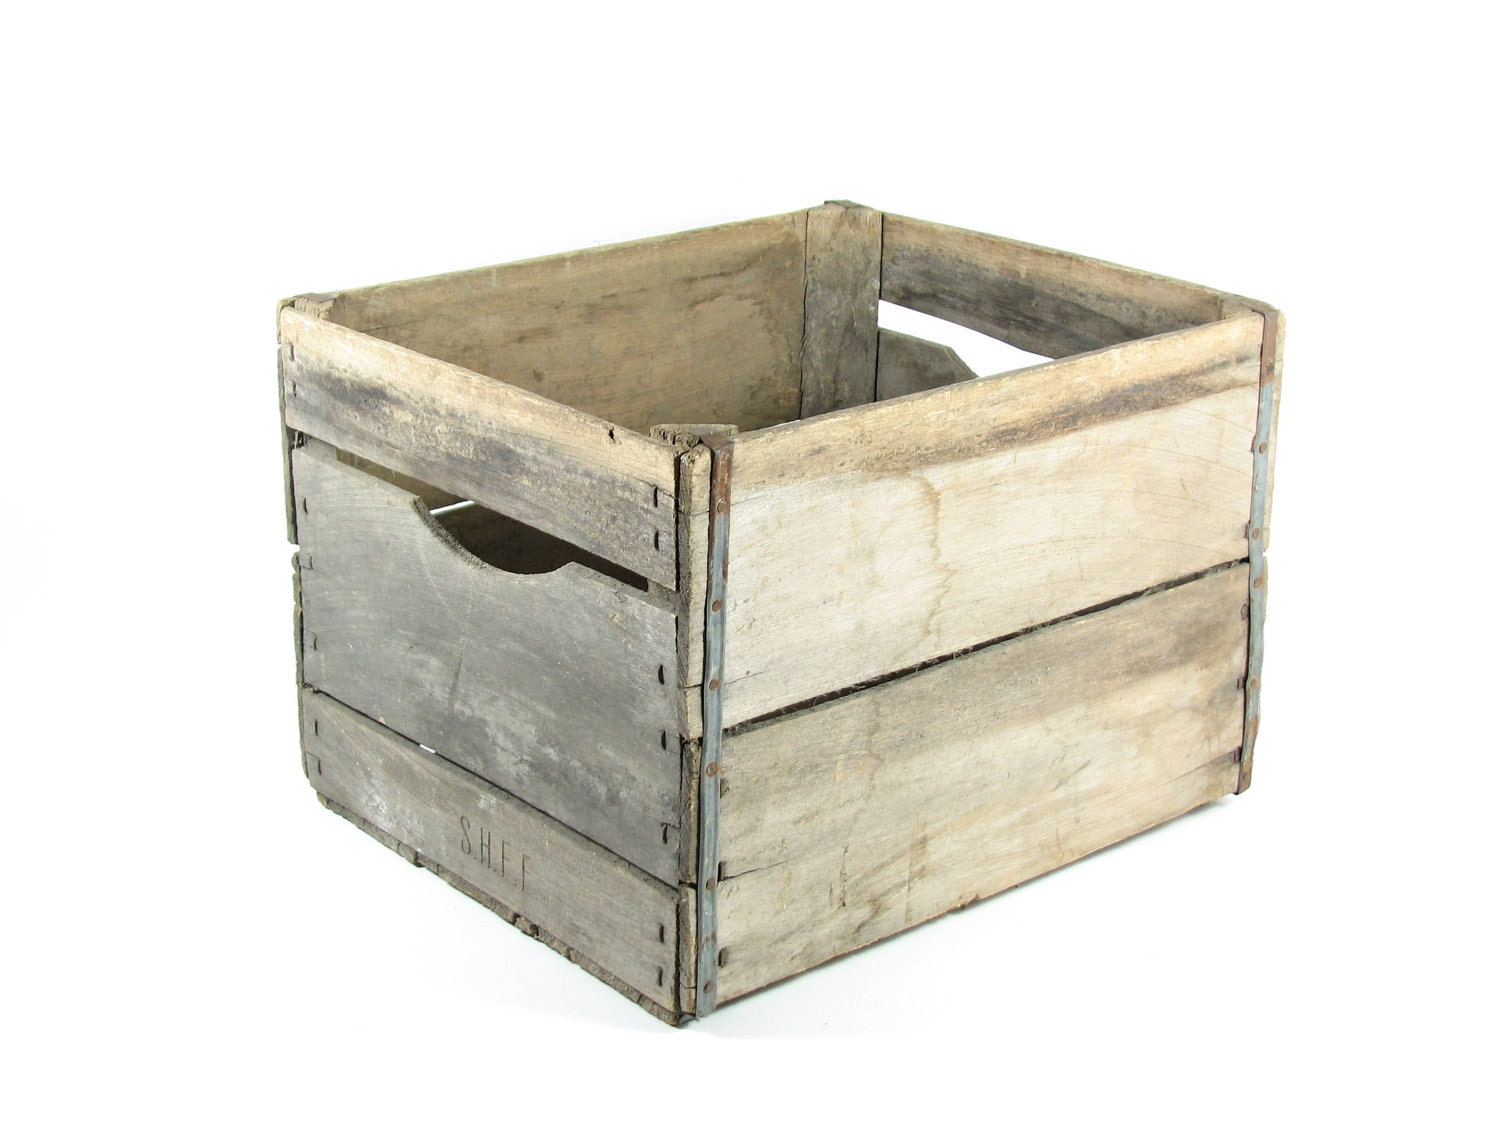 vintage wood crate box wooden crate fruit crate storage crate